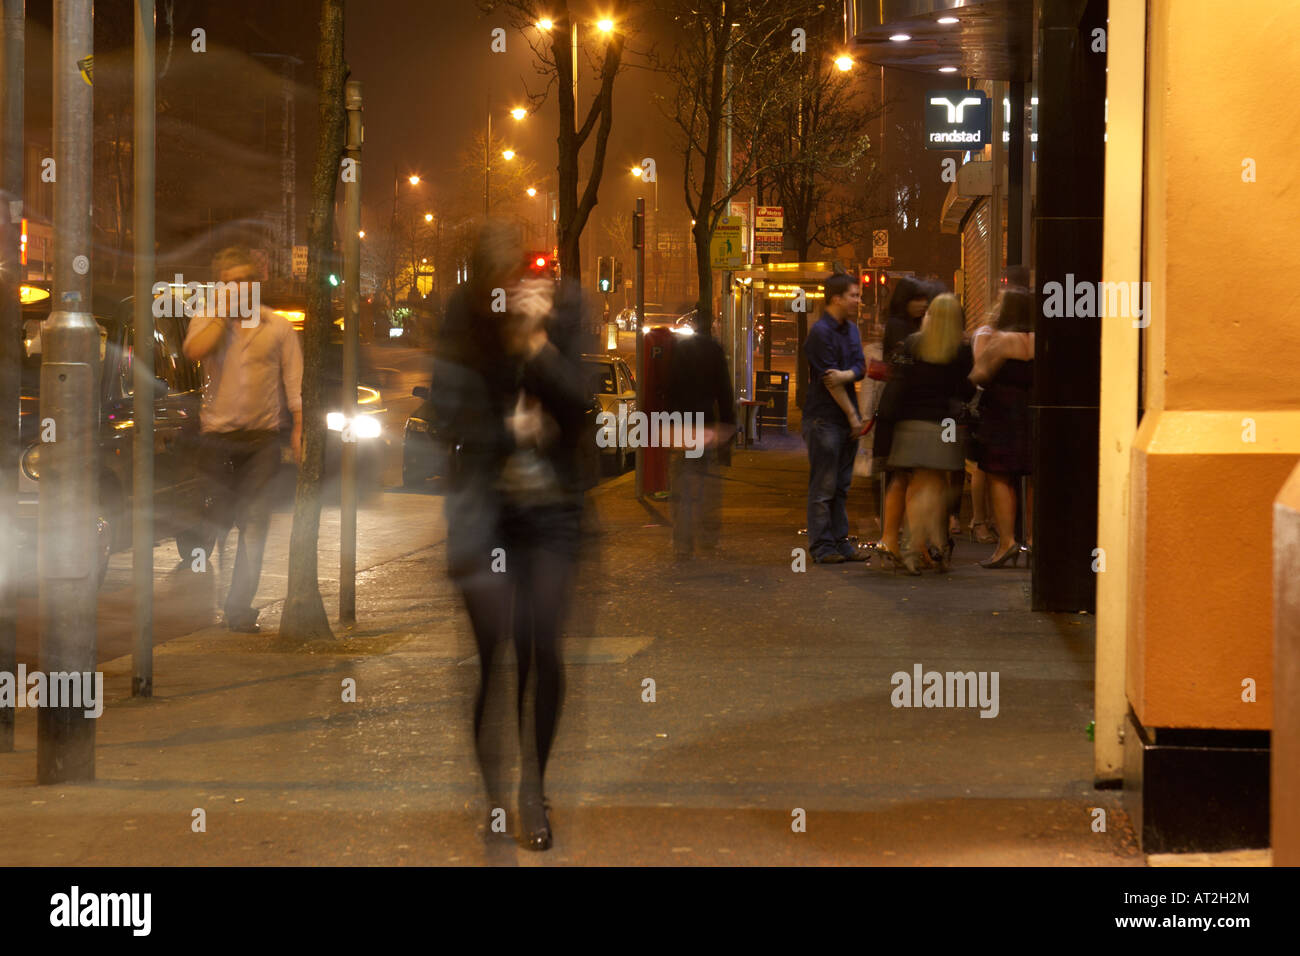 people nightclubbers walking past pubs and clubs on bradbury place belfast - Stock Image